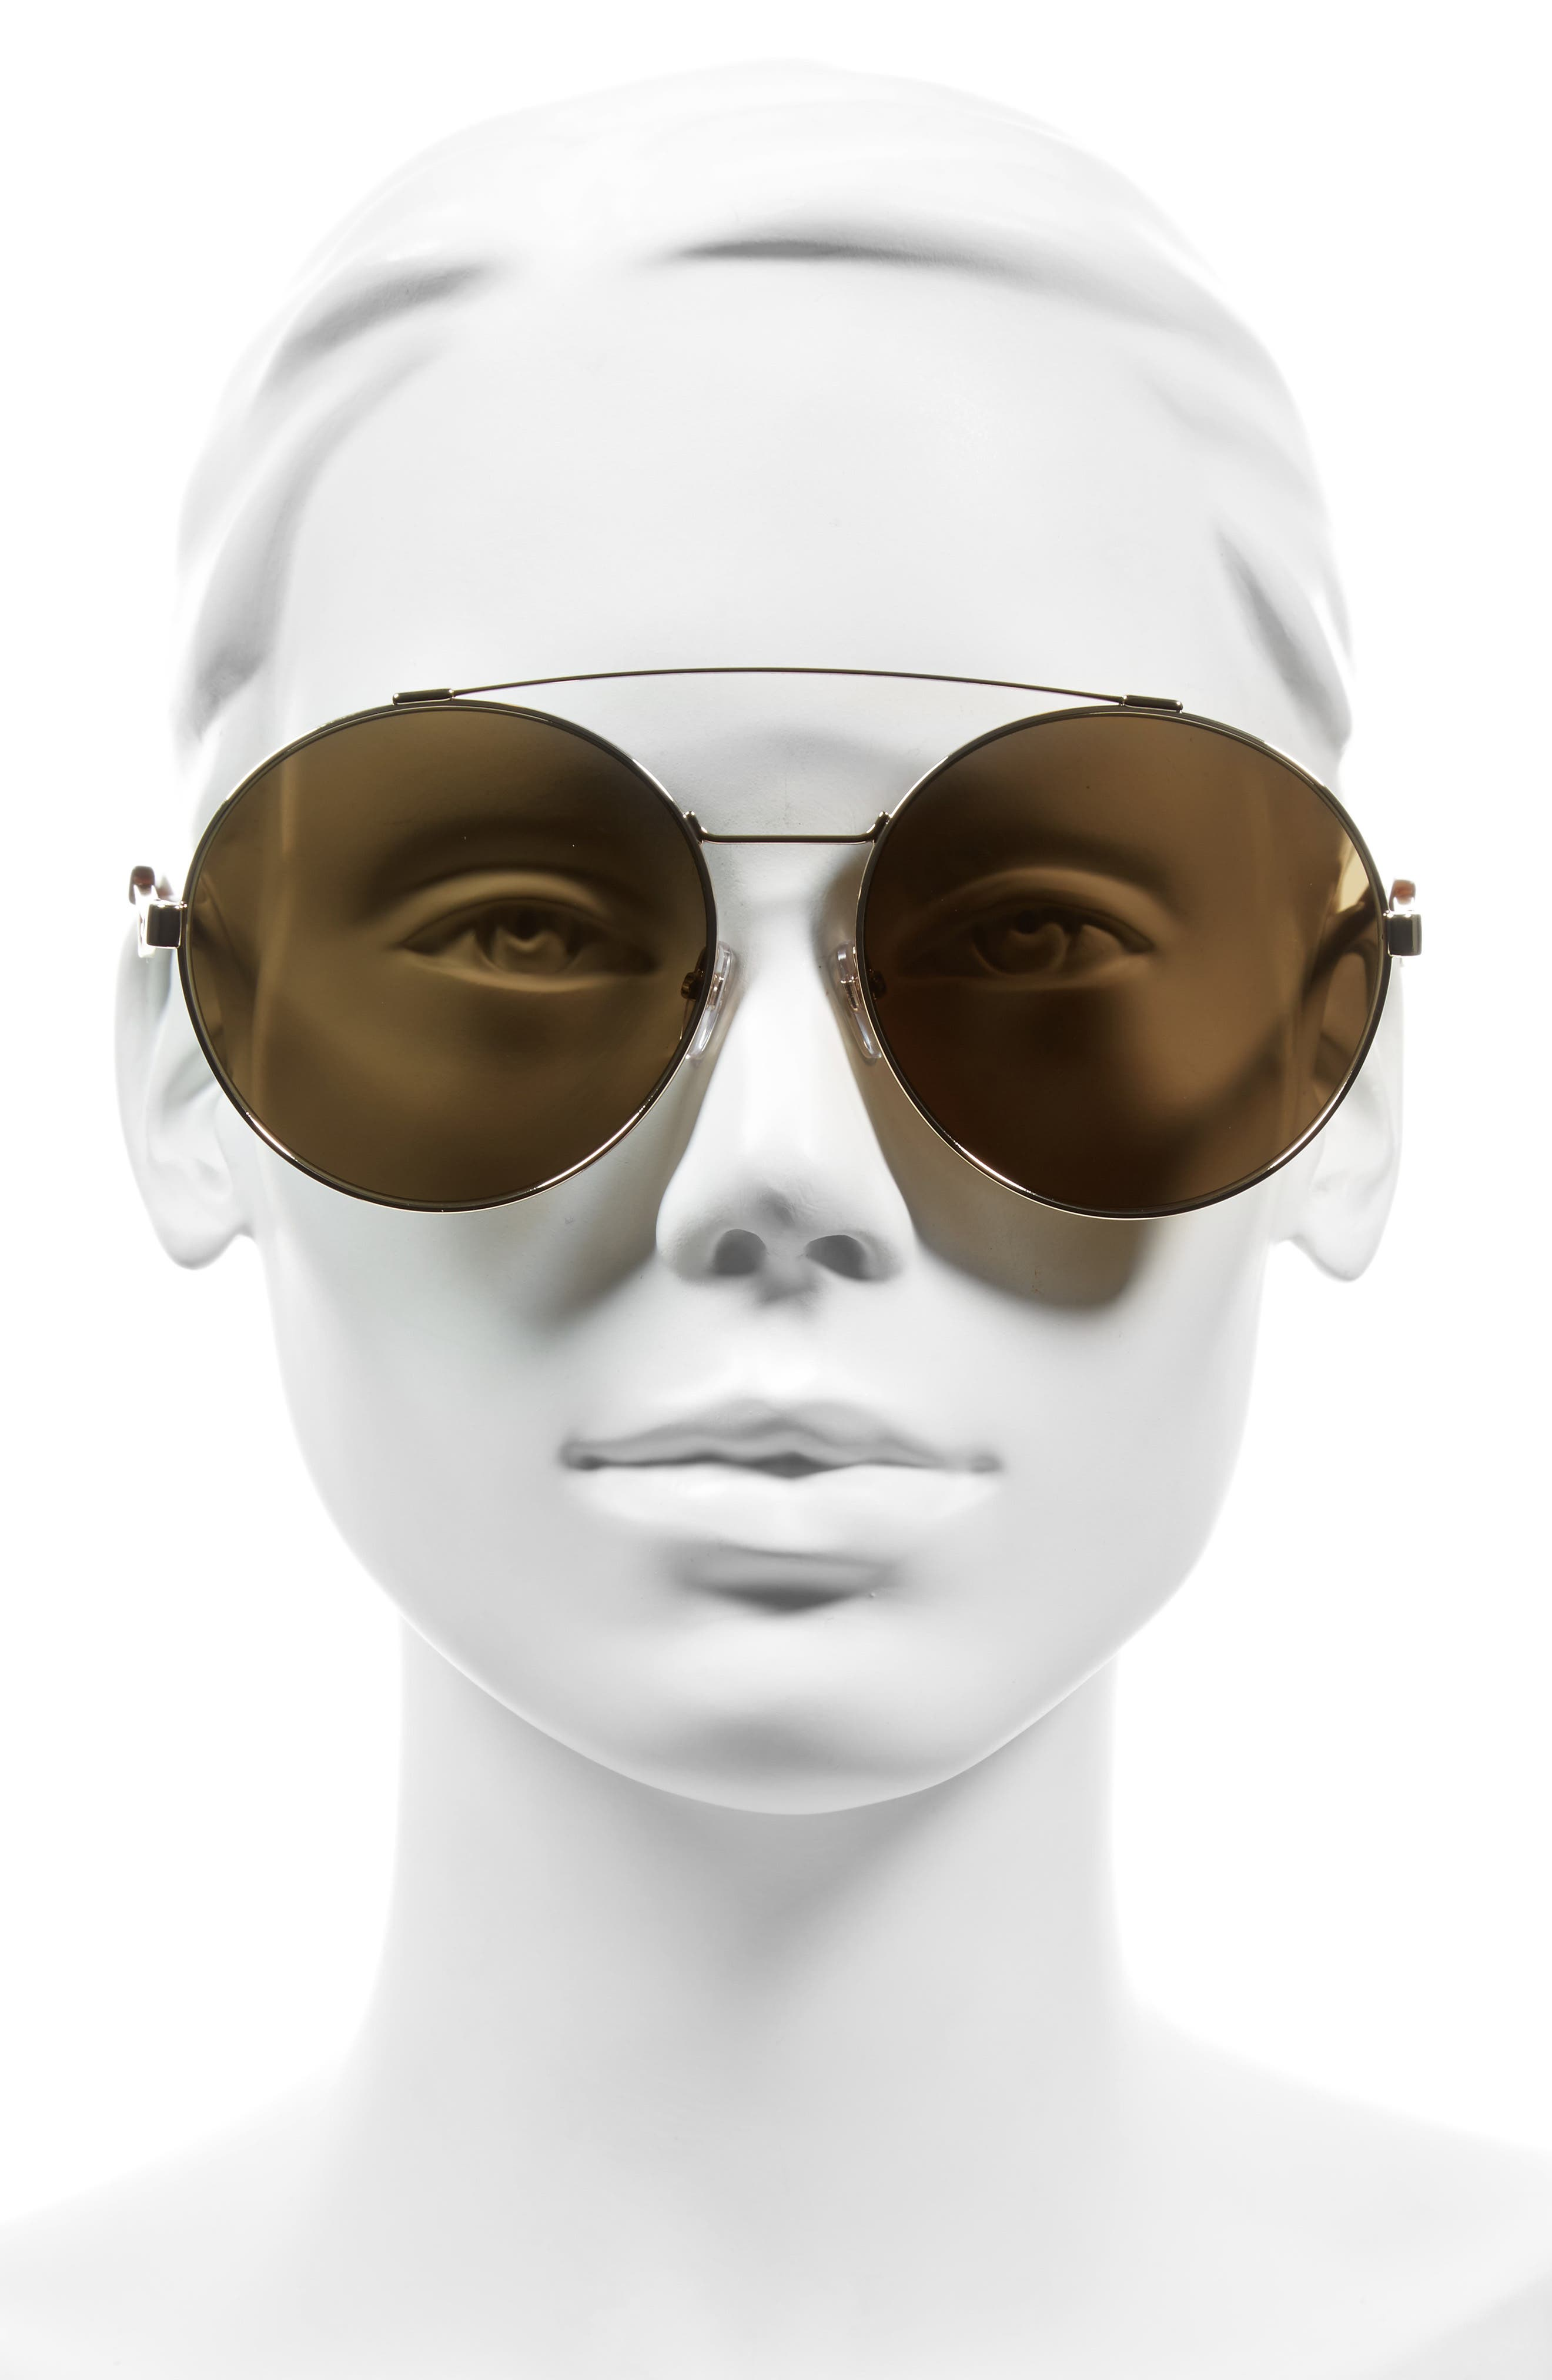 62mm Round Sunglasses,                             Alternate thumbnail 2, color,                             GOLD